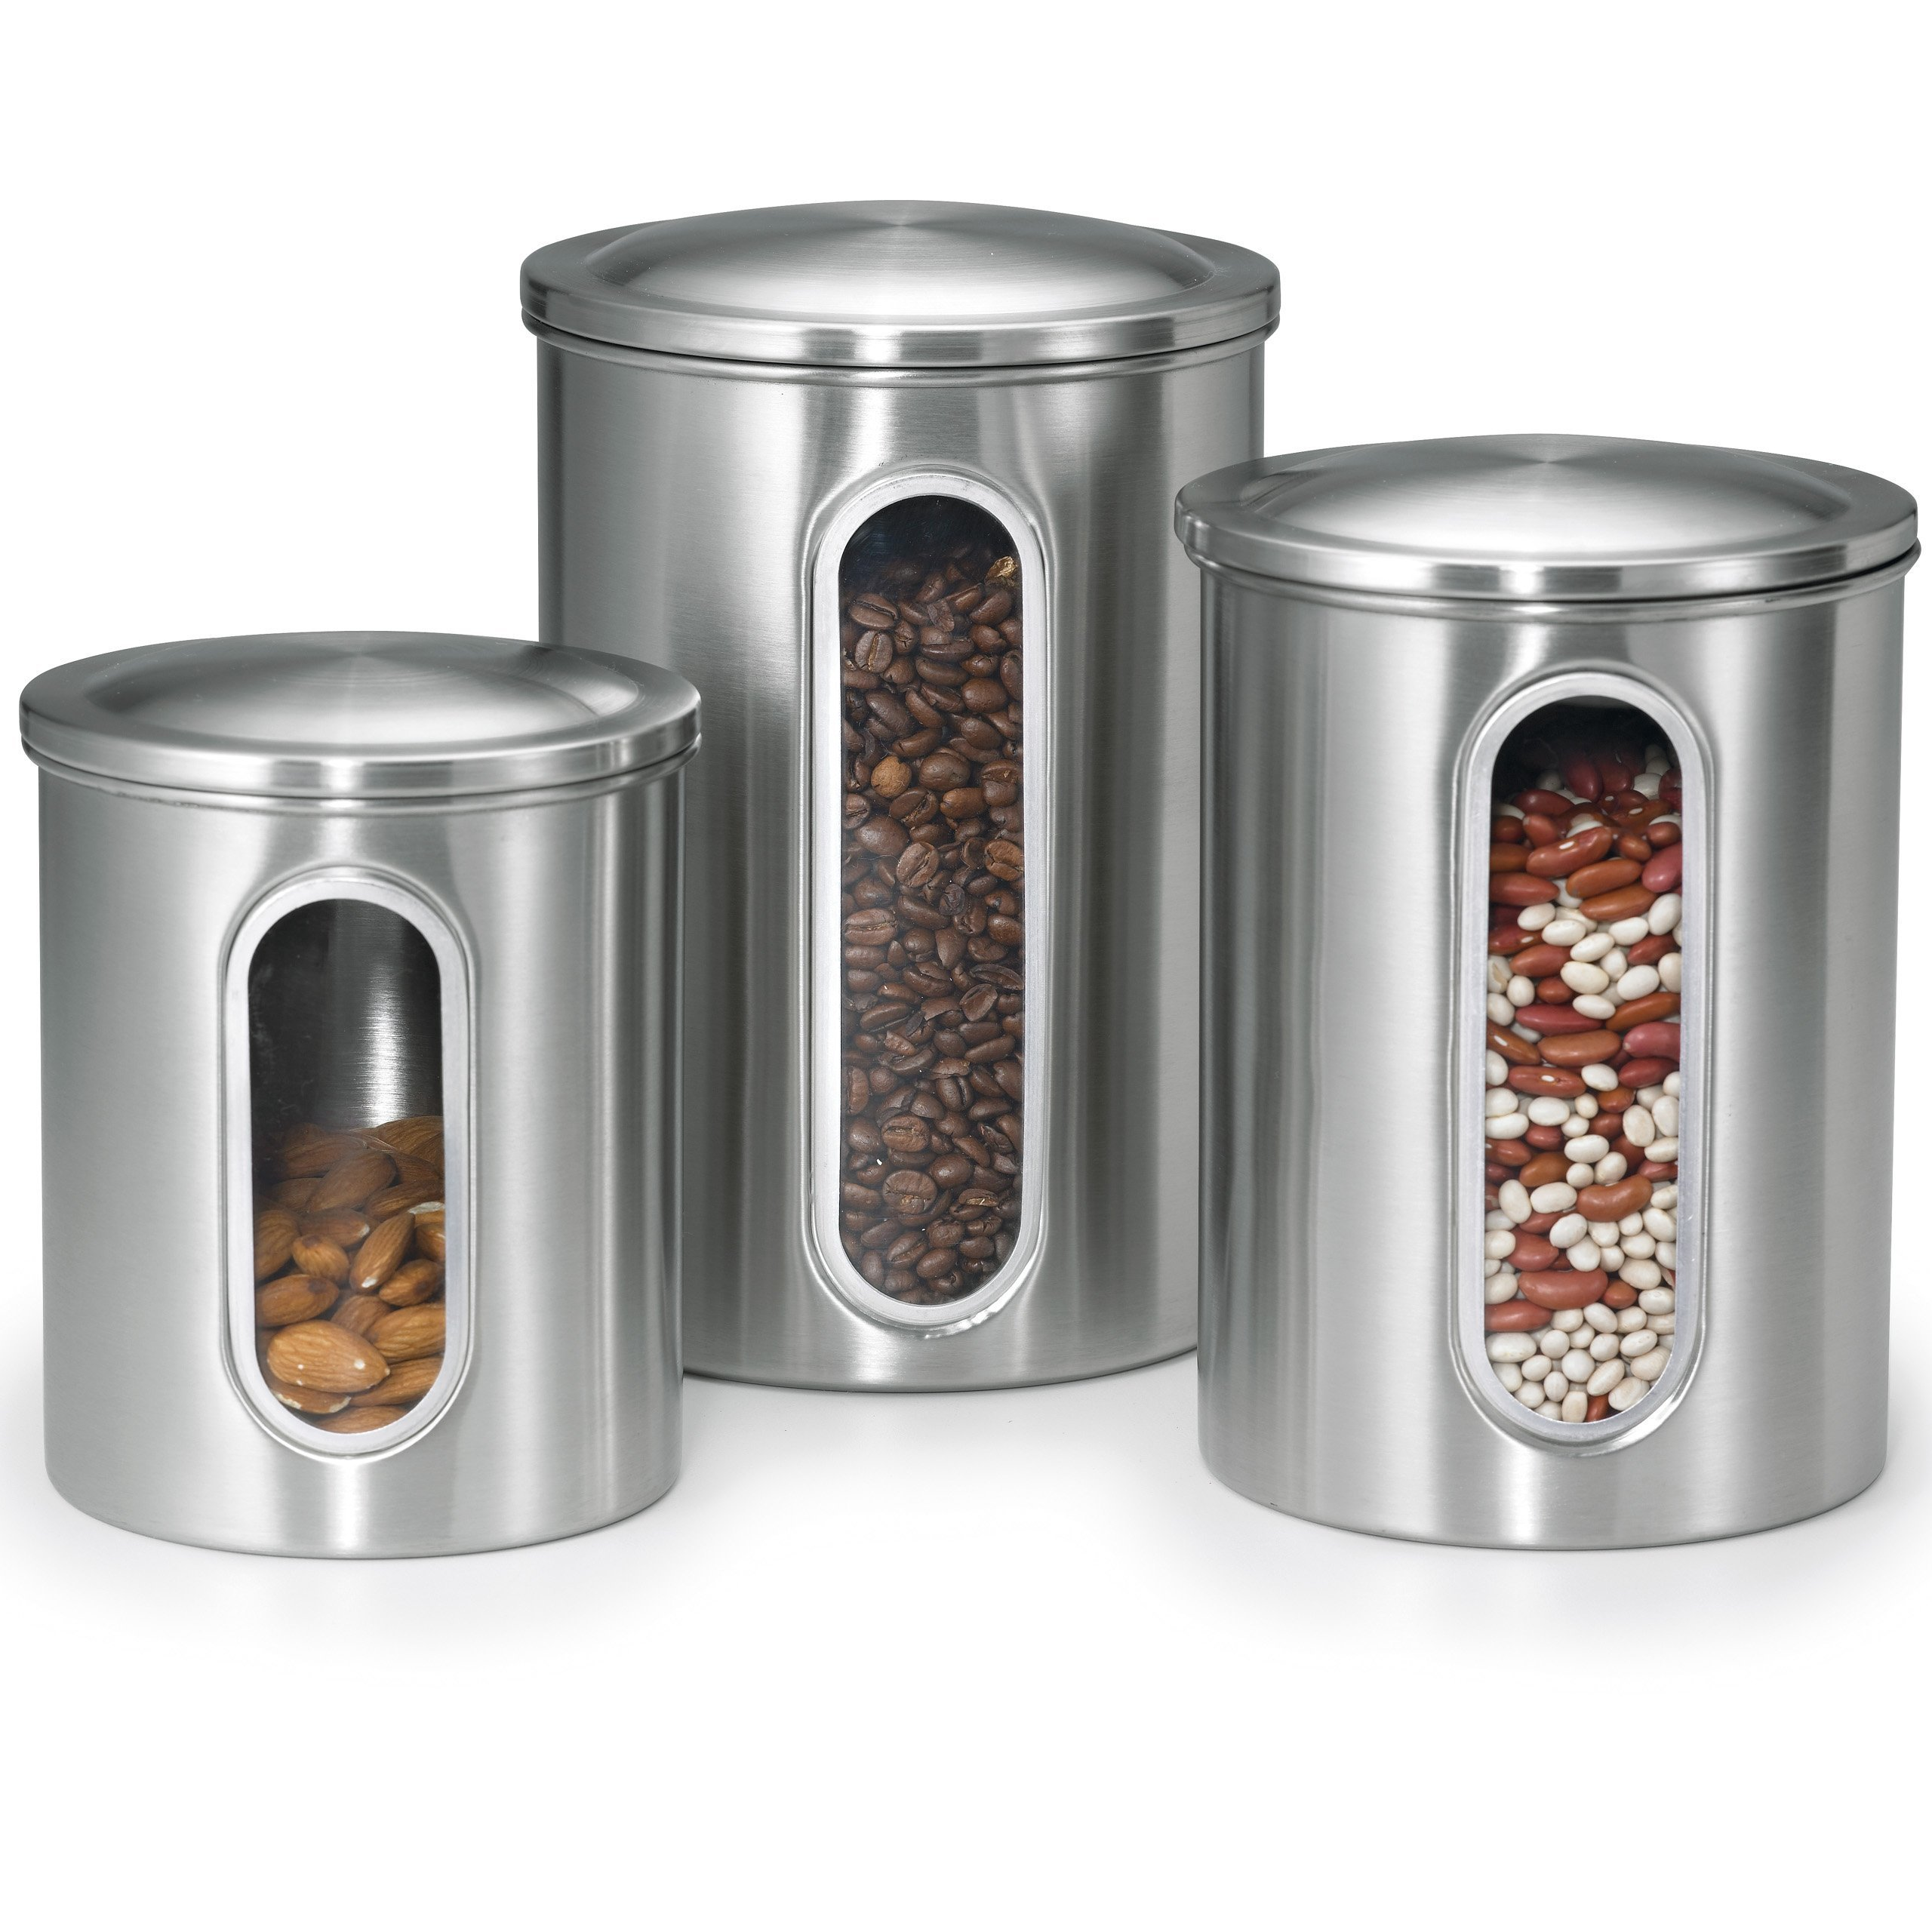 Polder 3 pc Food Storage Canister Set, Removable Air-Tight Lids, Stainless Steel, See-Through Windows to View Content Levels, 2, 3 & 4 qt sizes